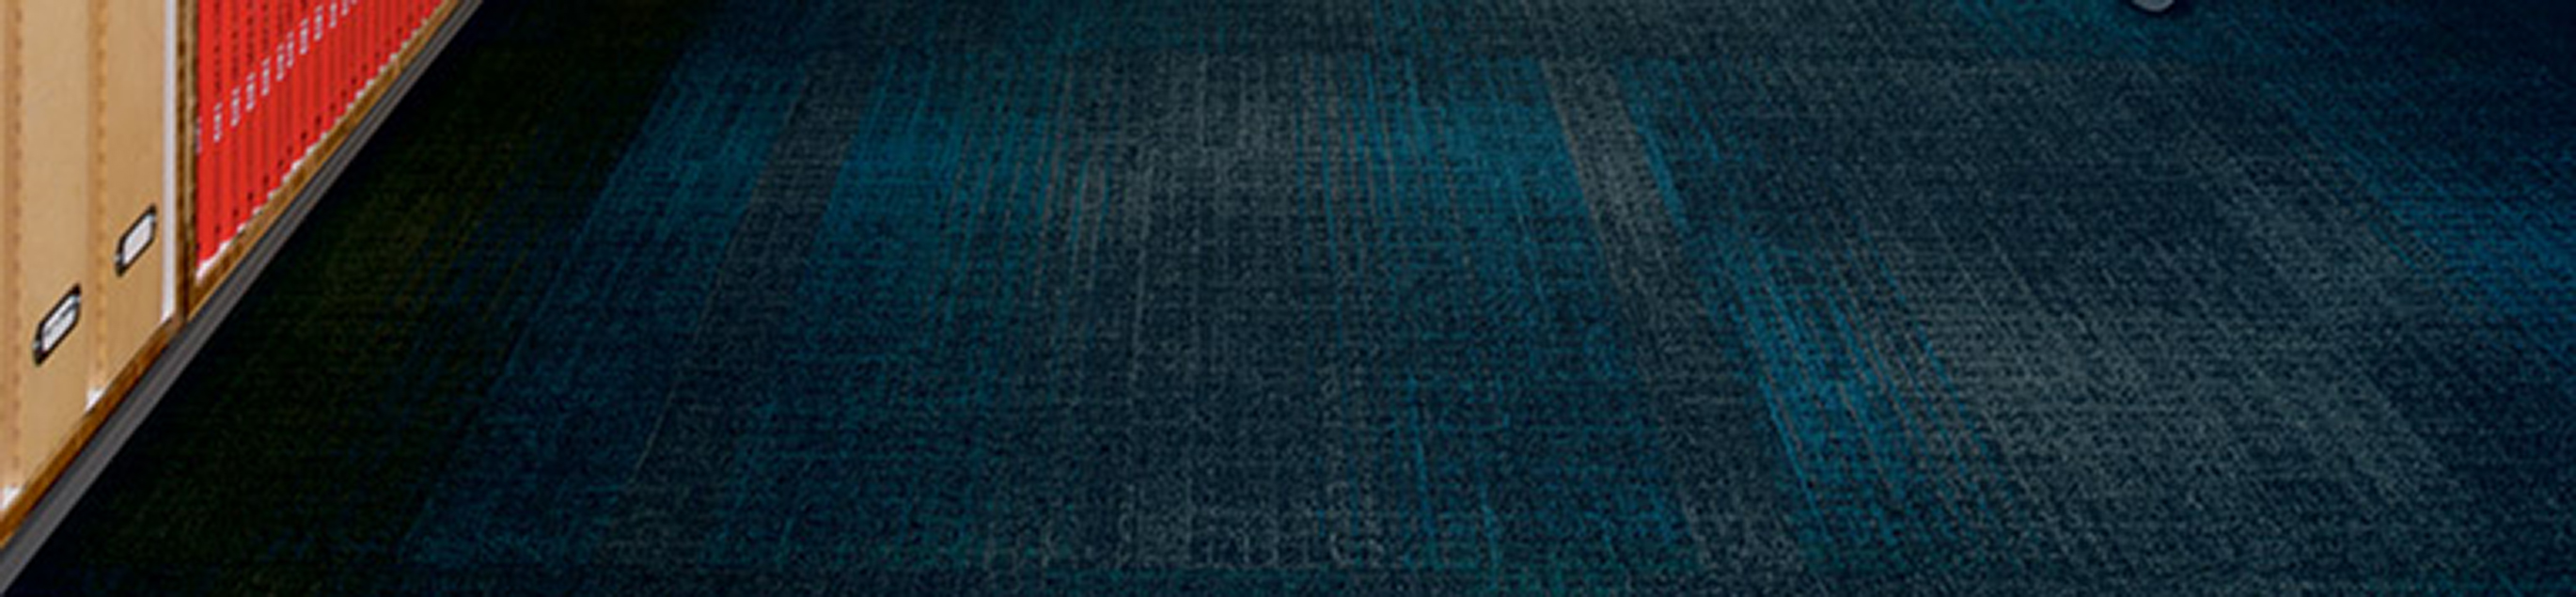 Divergent Carpet Collection Inspiration and Product Photos